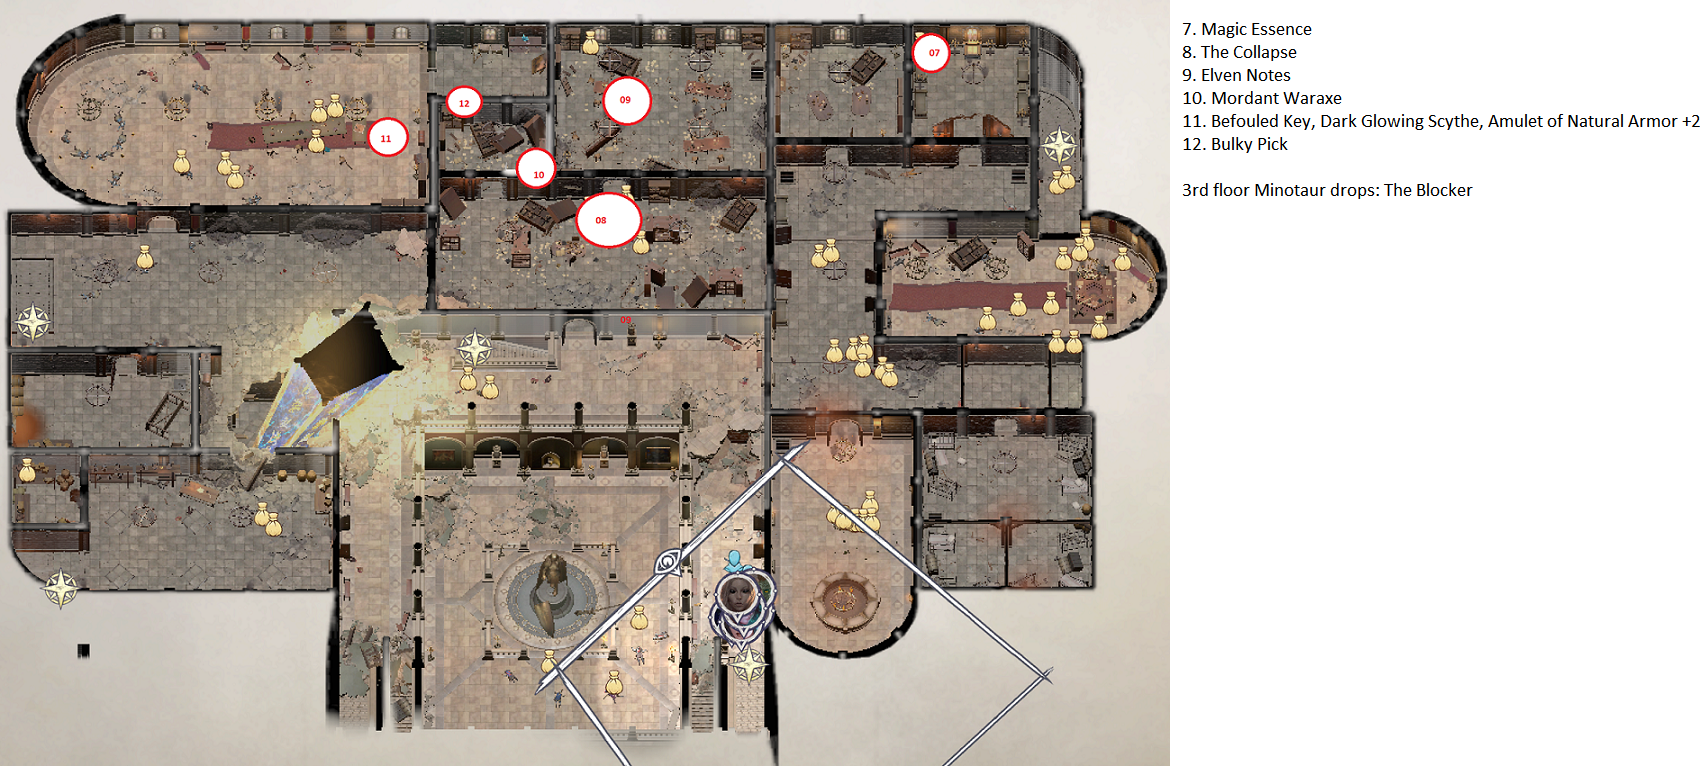 Pathfinder: Wrath of the Righteous All Items Location in Cave Map Guide - Item Locations - 54C5FA6